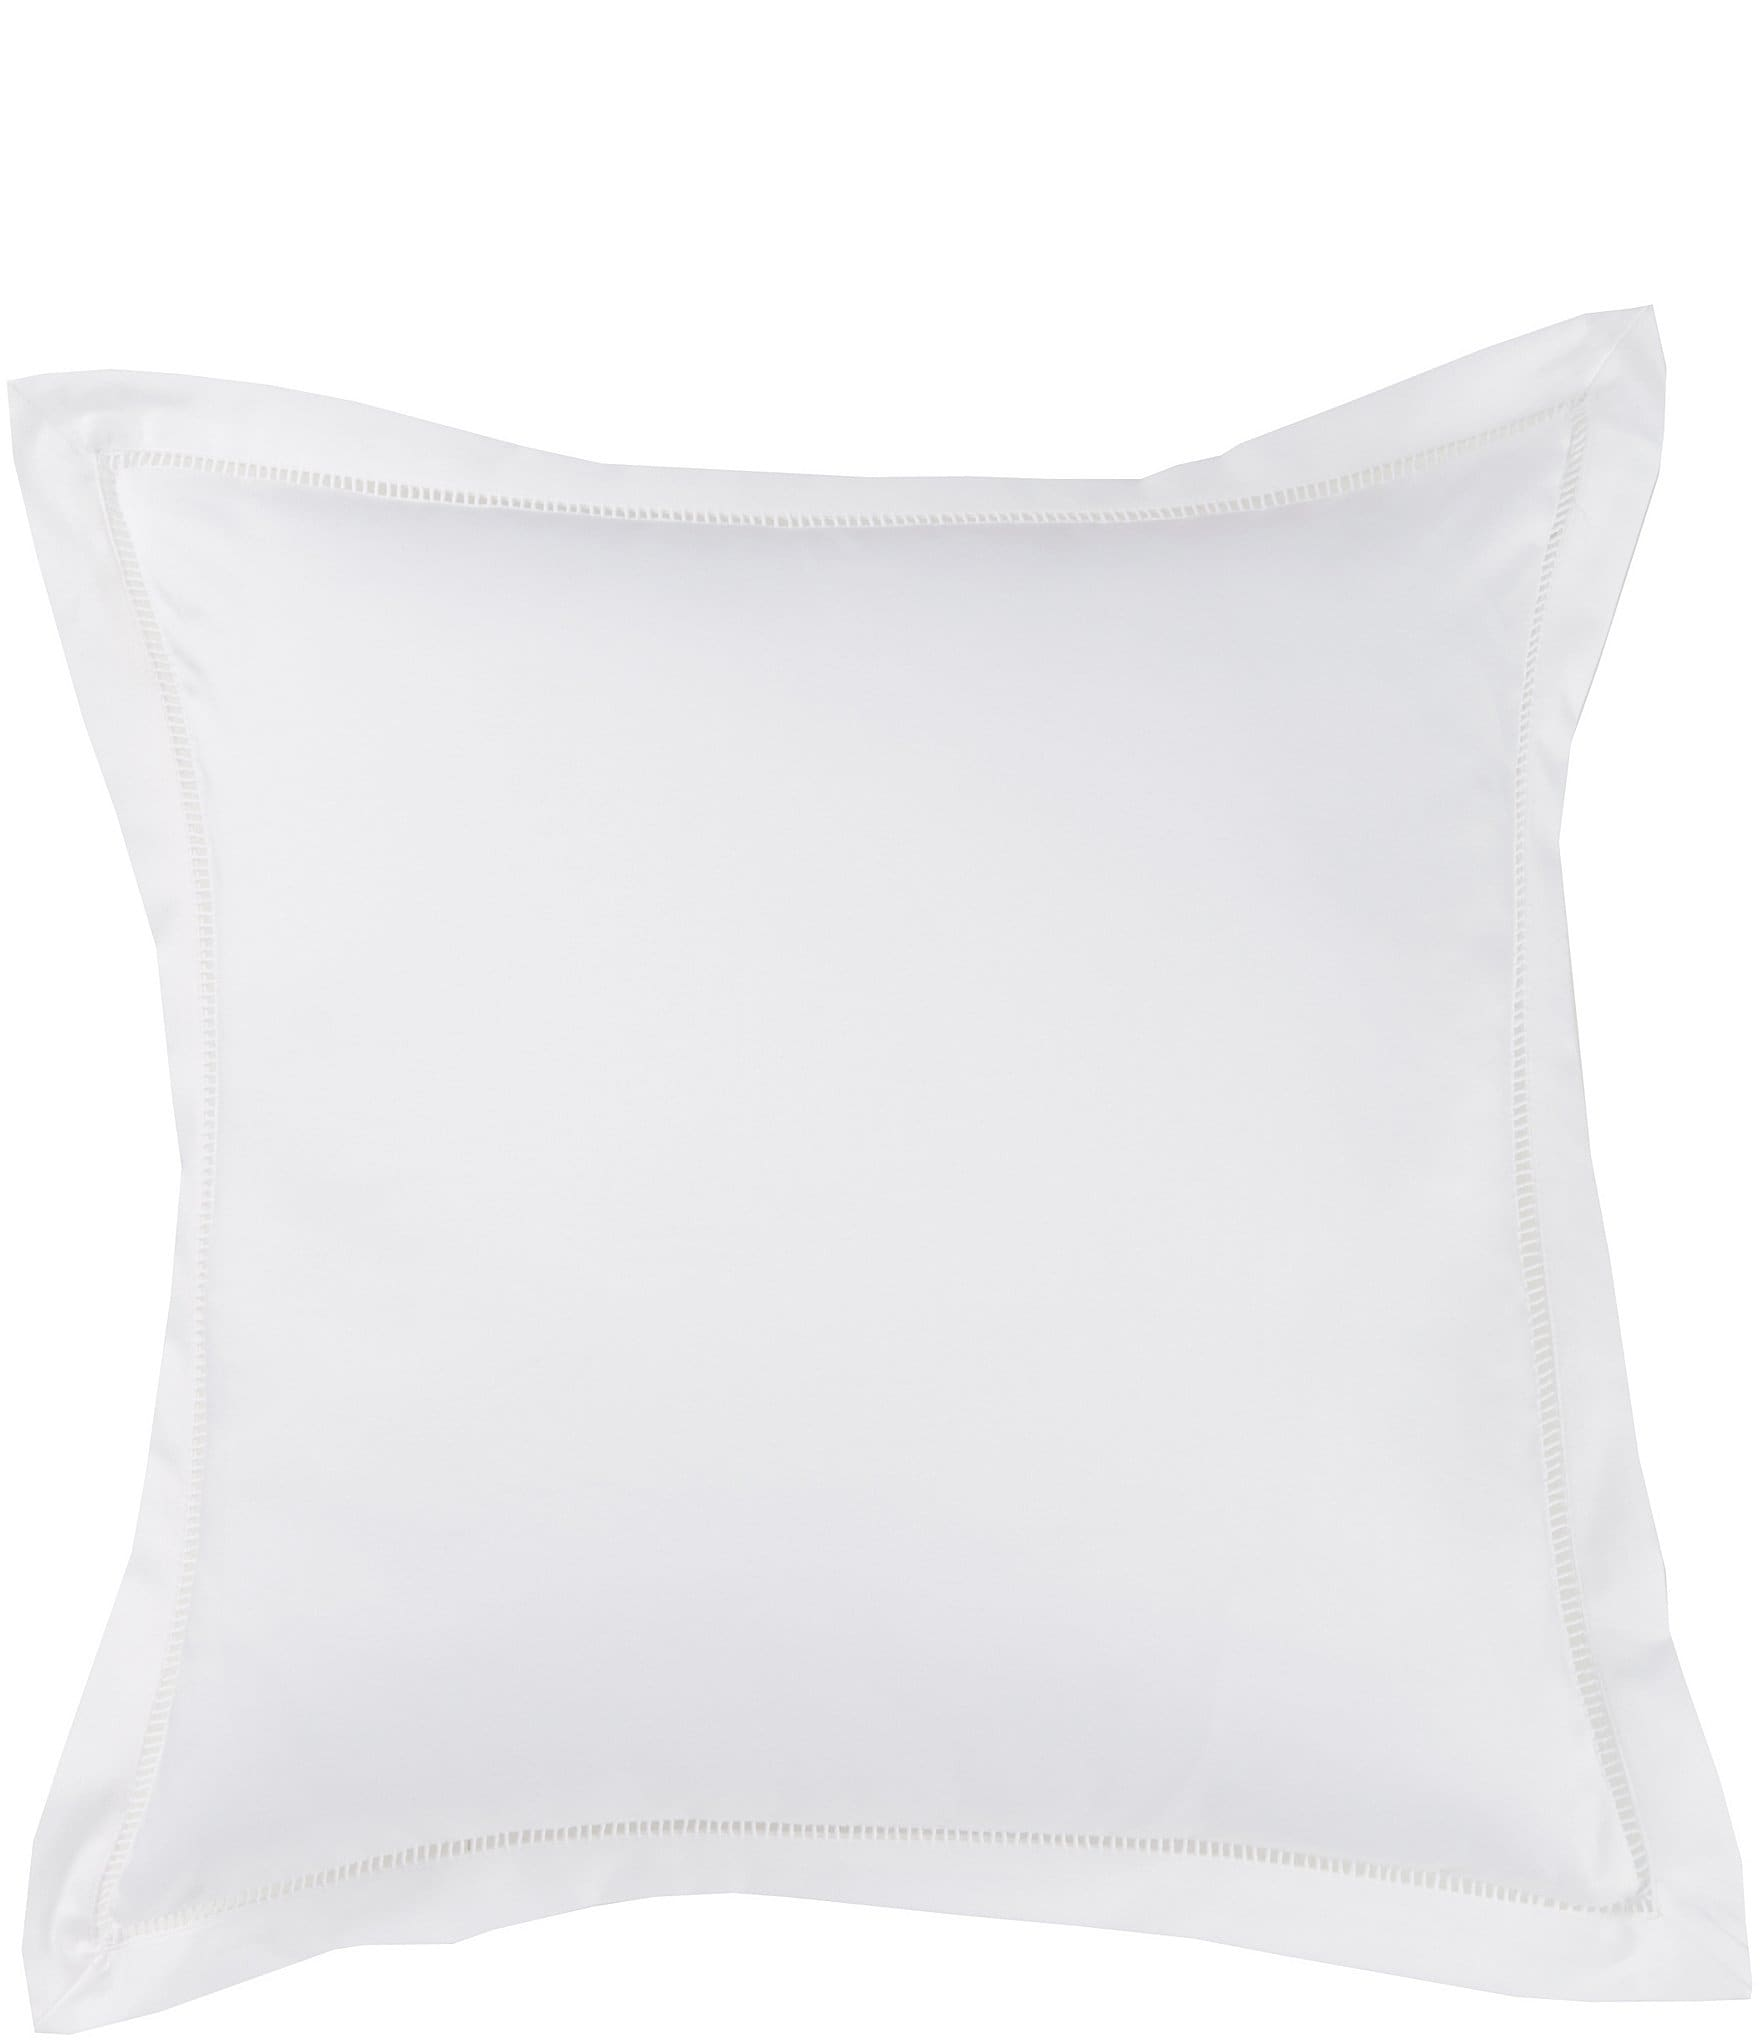 Southern Living Heirloom Sa Twill Square Pillow